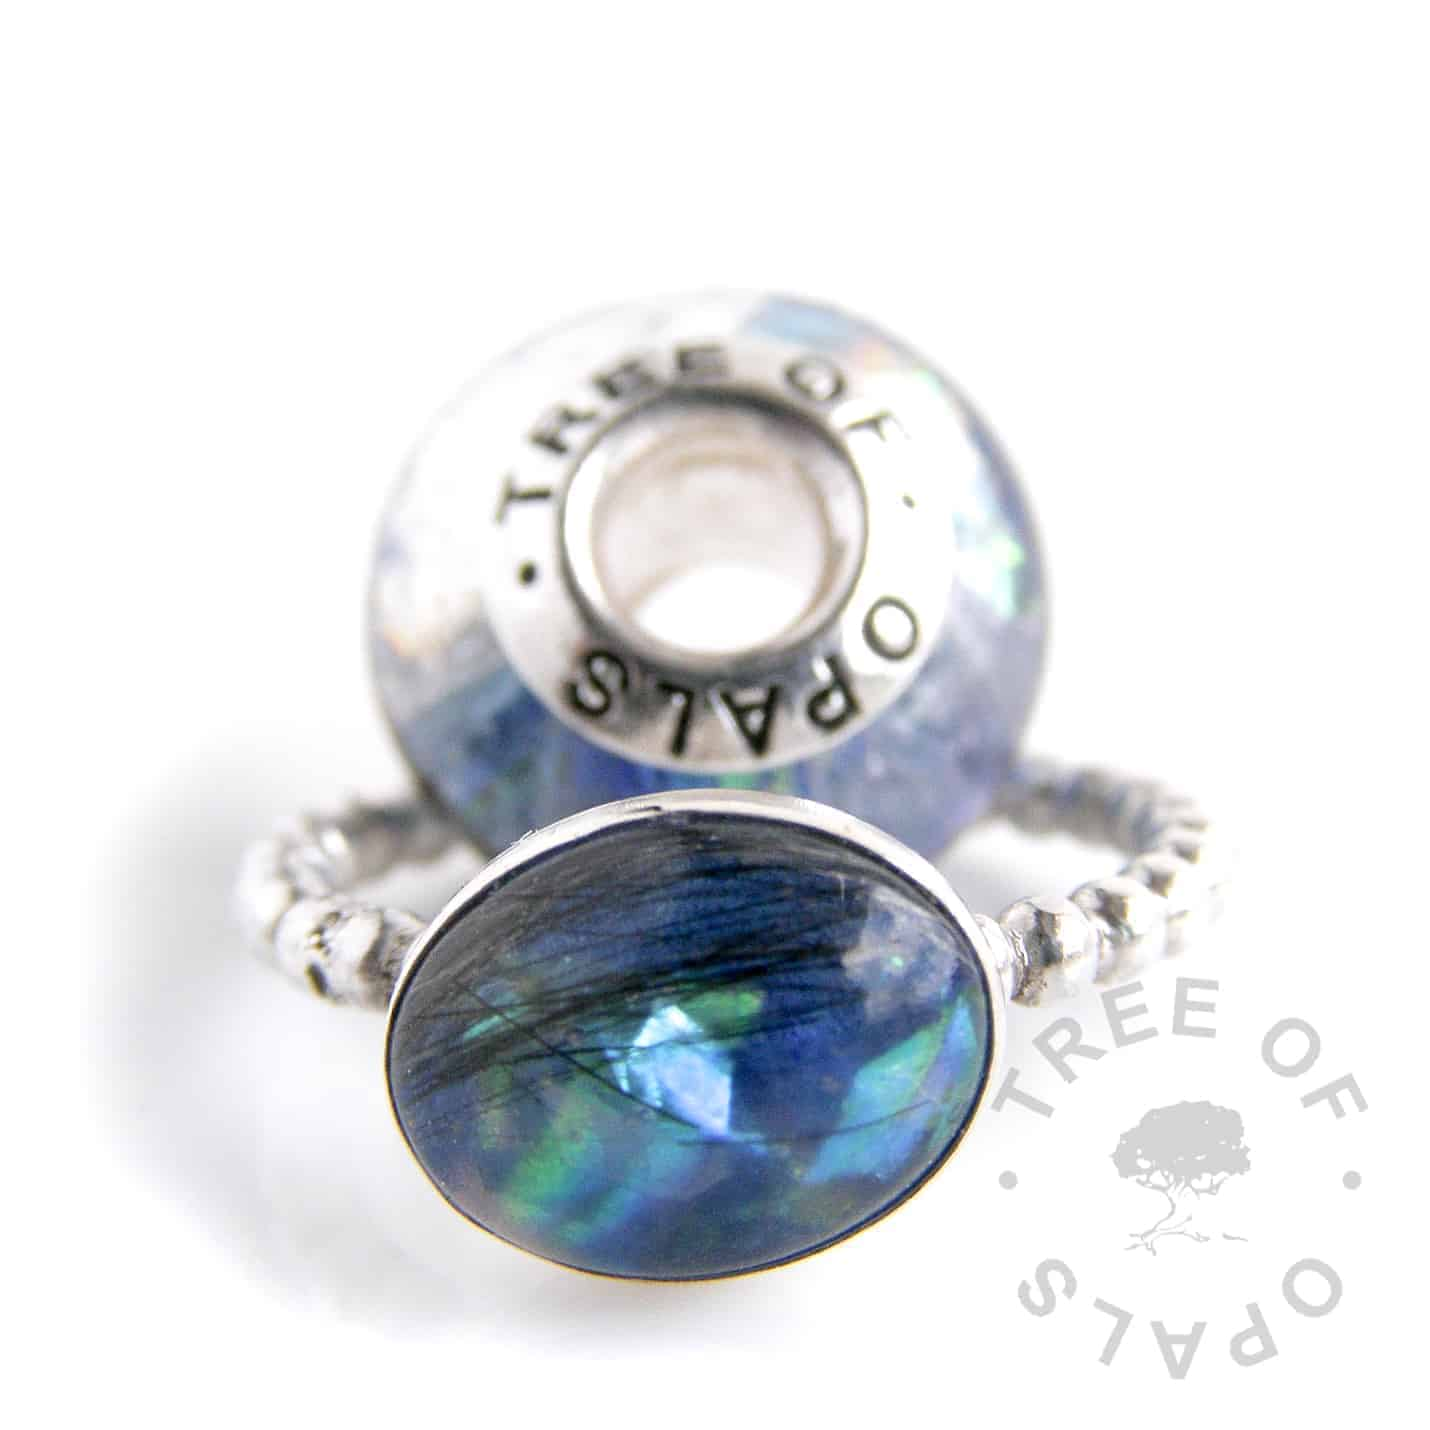 lock of hair family order lock of hair ring and charm bead with blue opalescent flakes, lock of hair charm bead blue opalescent flakes and Aegean blue shimmer core and solid sterling silver Tree of Opals signature core. Handmade with sterling silver by Tree of Opals